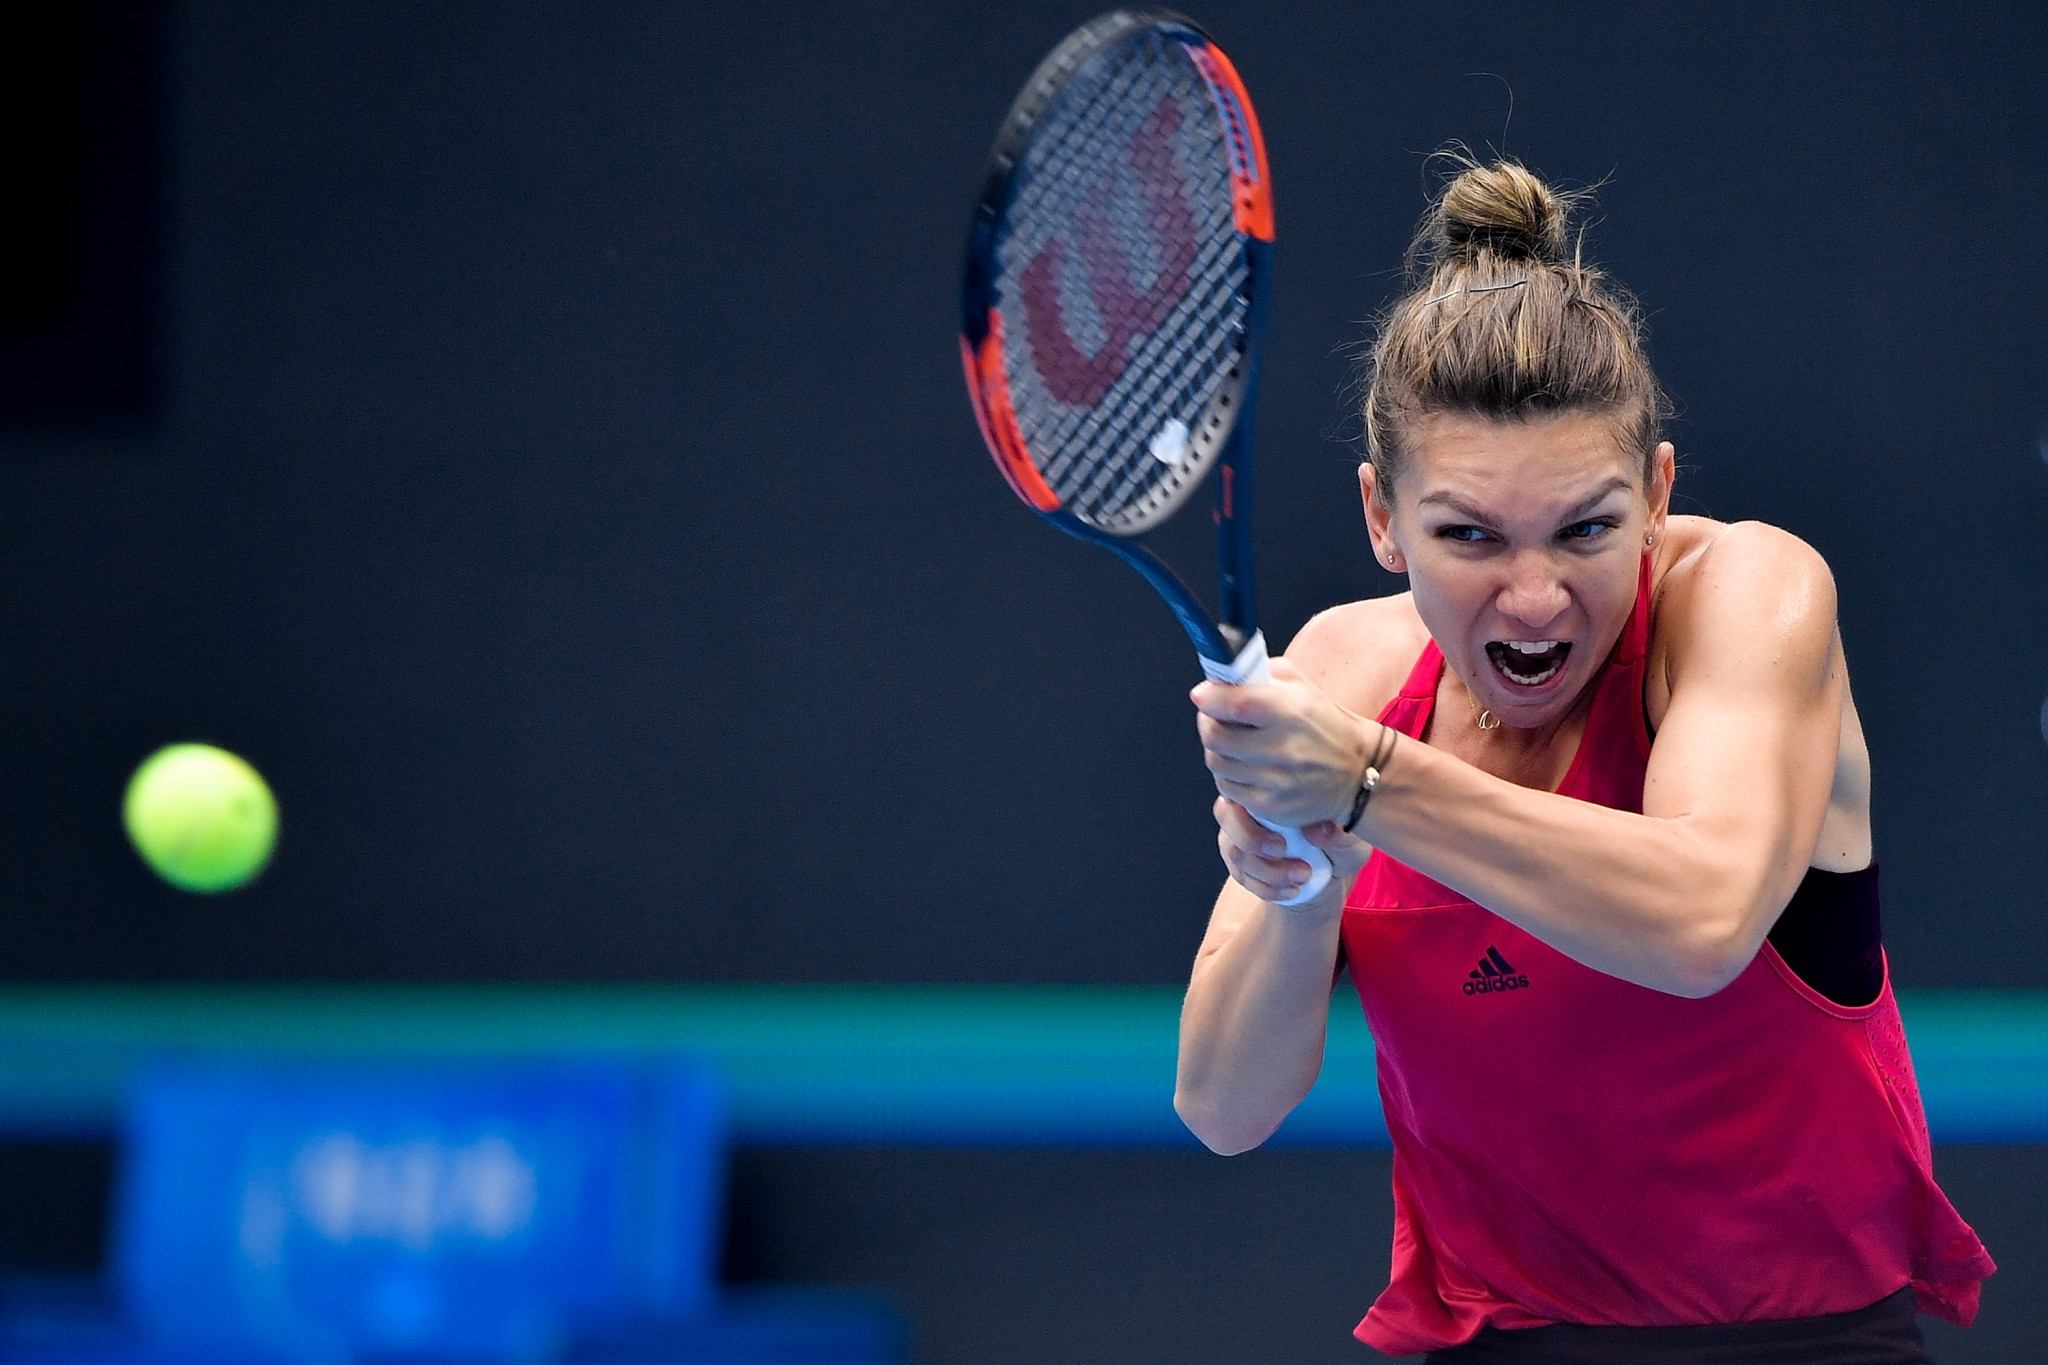 Simona Halep will become the new world number one after the Romanian booked her place in the final of the China Open ©Getty Images